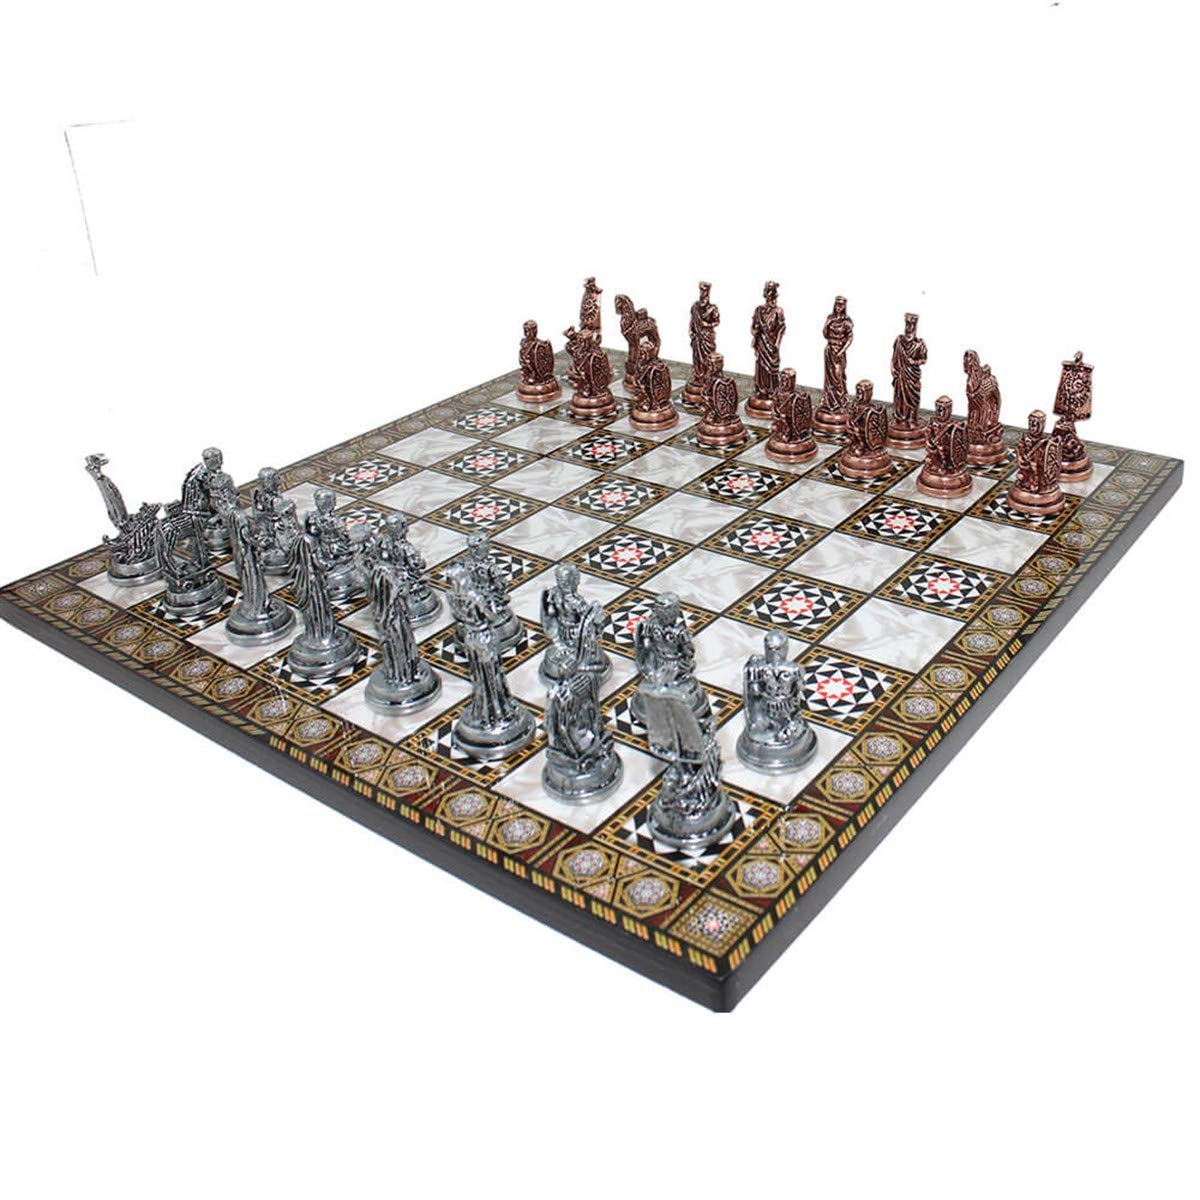 Historical Antique Copper Troy Figures Metal Chess Set,Handmade Pieces,Mother-of-Mother Pearl Wood Design Chess Board King 7cm